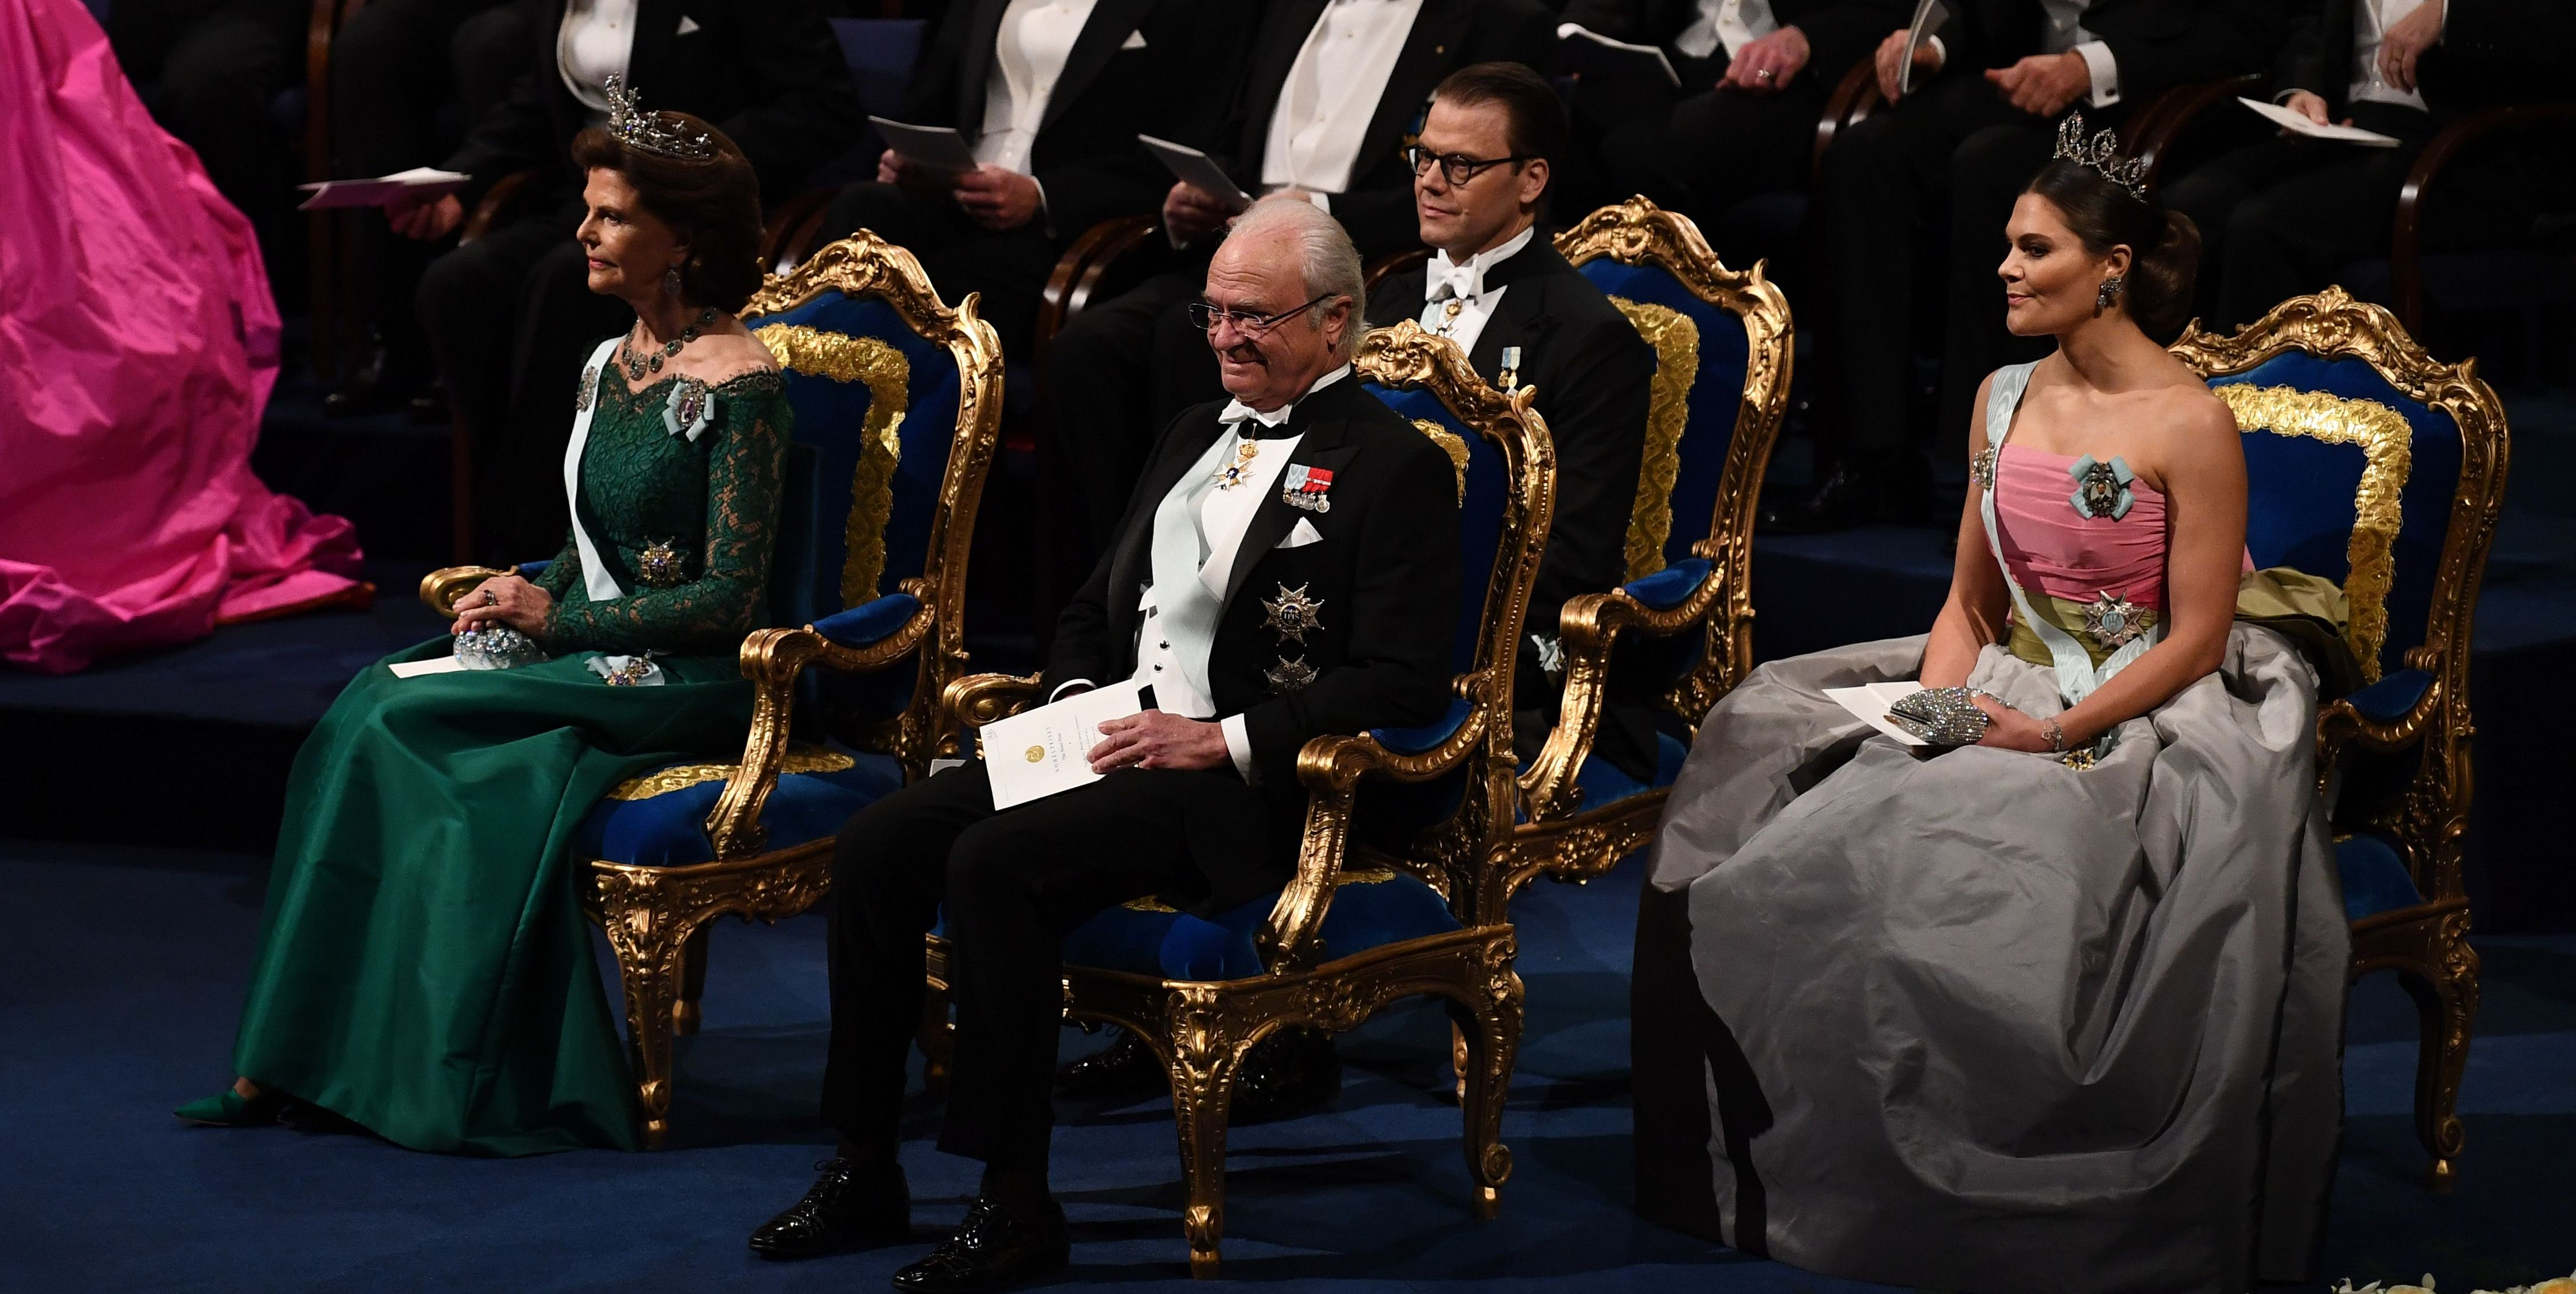 All the Photos of the Norwegian and Swedish Royal Families at the Nobel Peace Prize Ceremonies